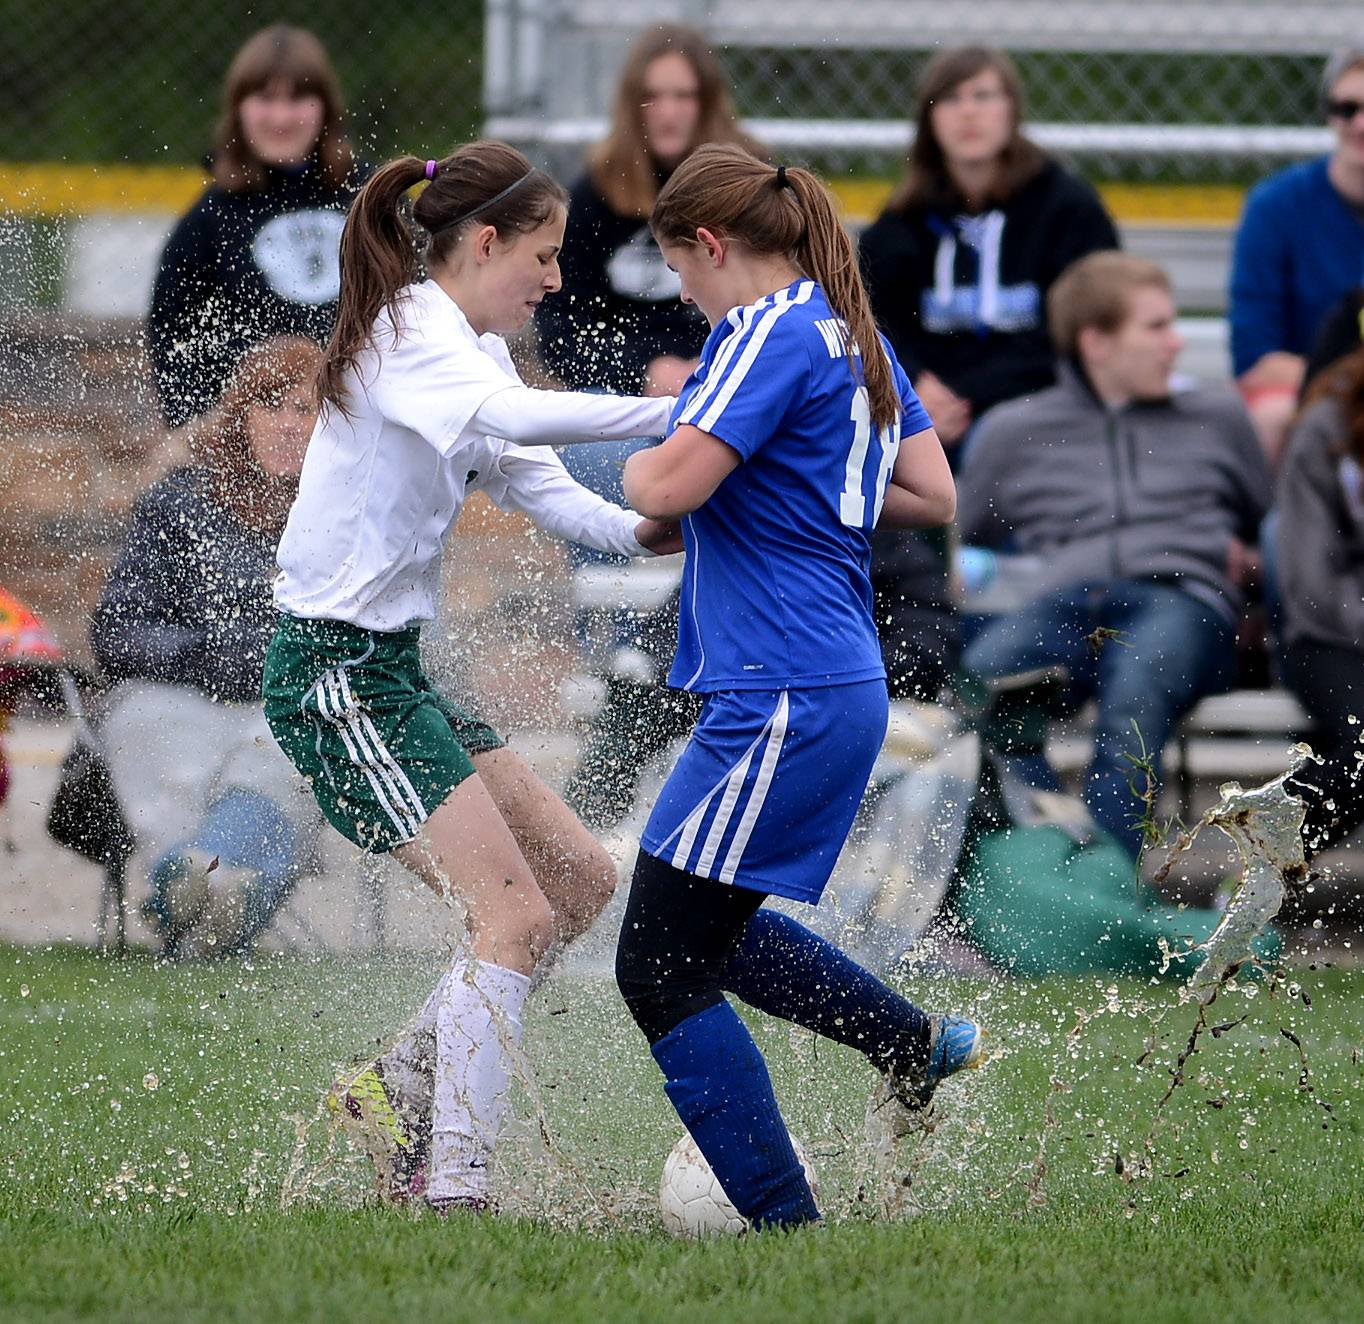 St. Edward's Chelsea Gnan (6) and Westminster Christian's Allie Tanzillo find the fields biggest puddle as they battle for the ball during Friday's regional final in Elgin.